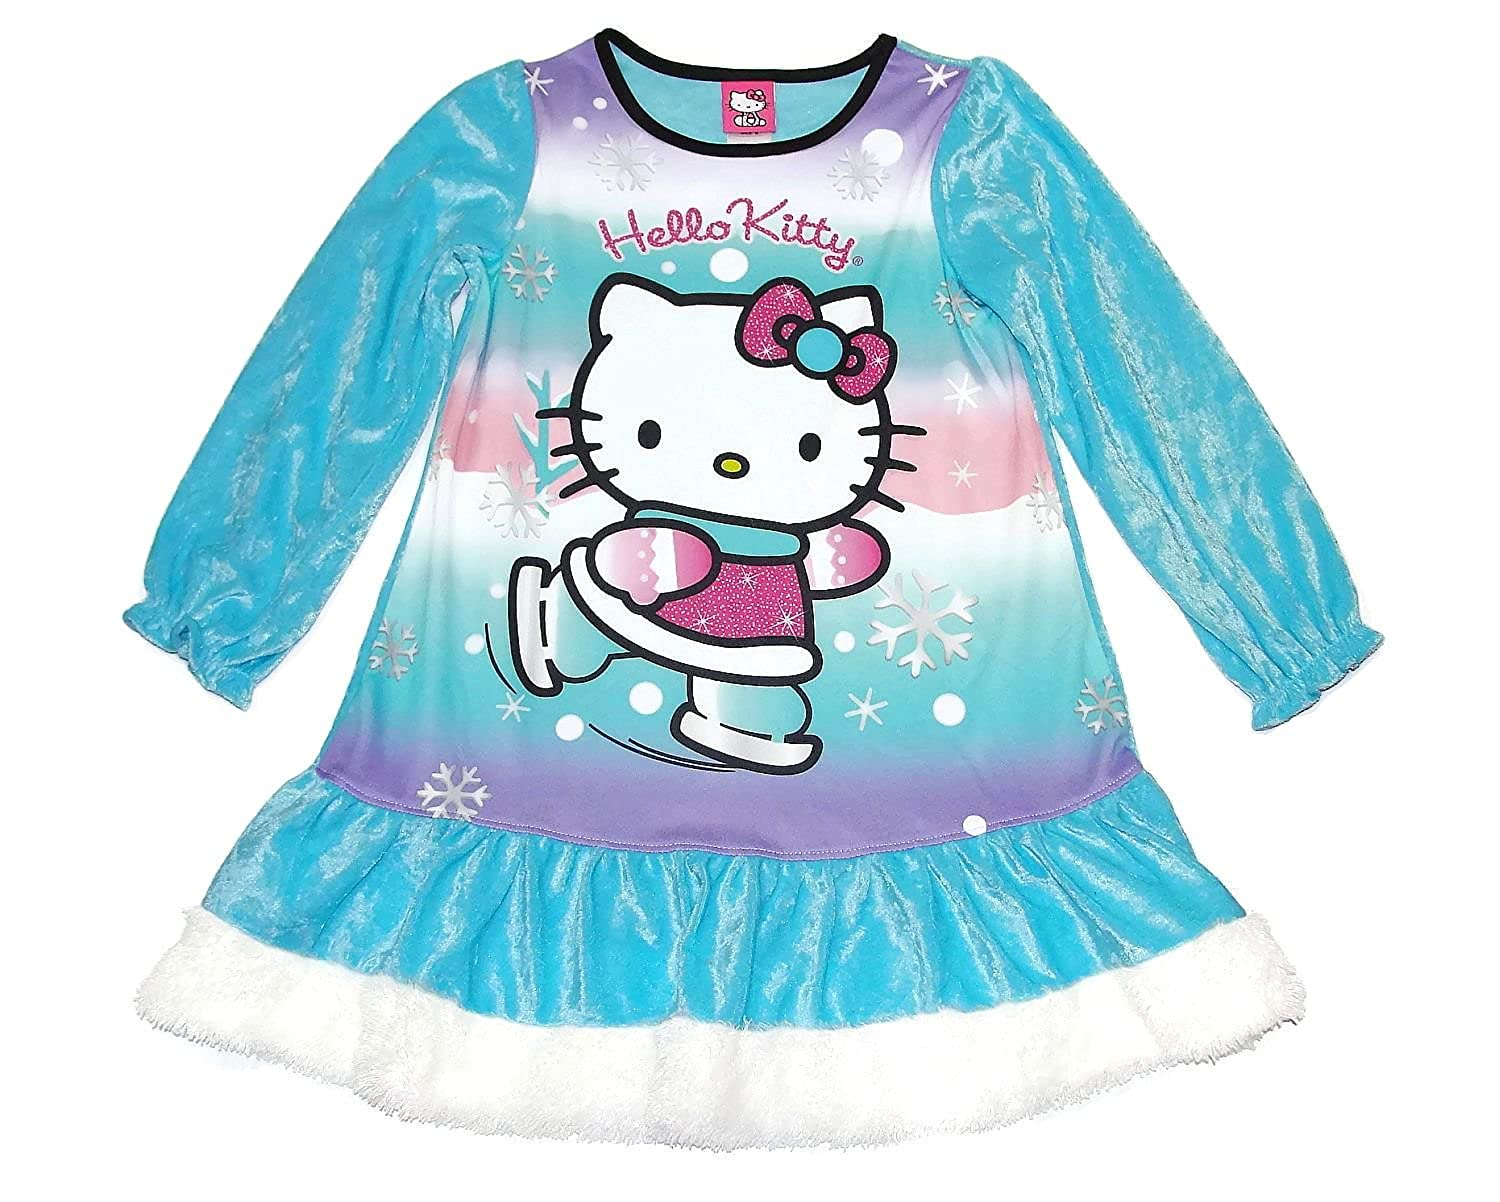 Gown Hello Kitty Girls Size 6 Blue Crushed Velour Winter Nightgown